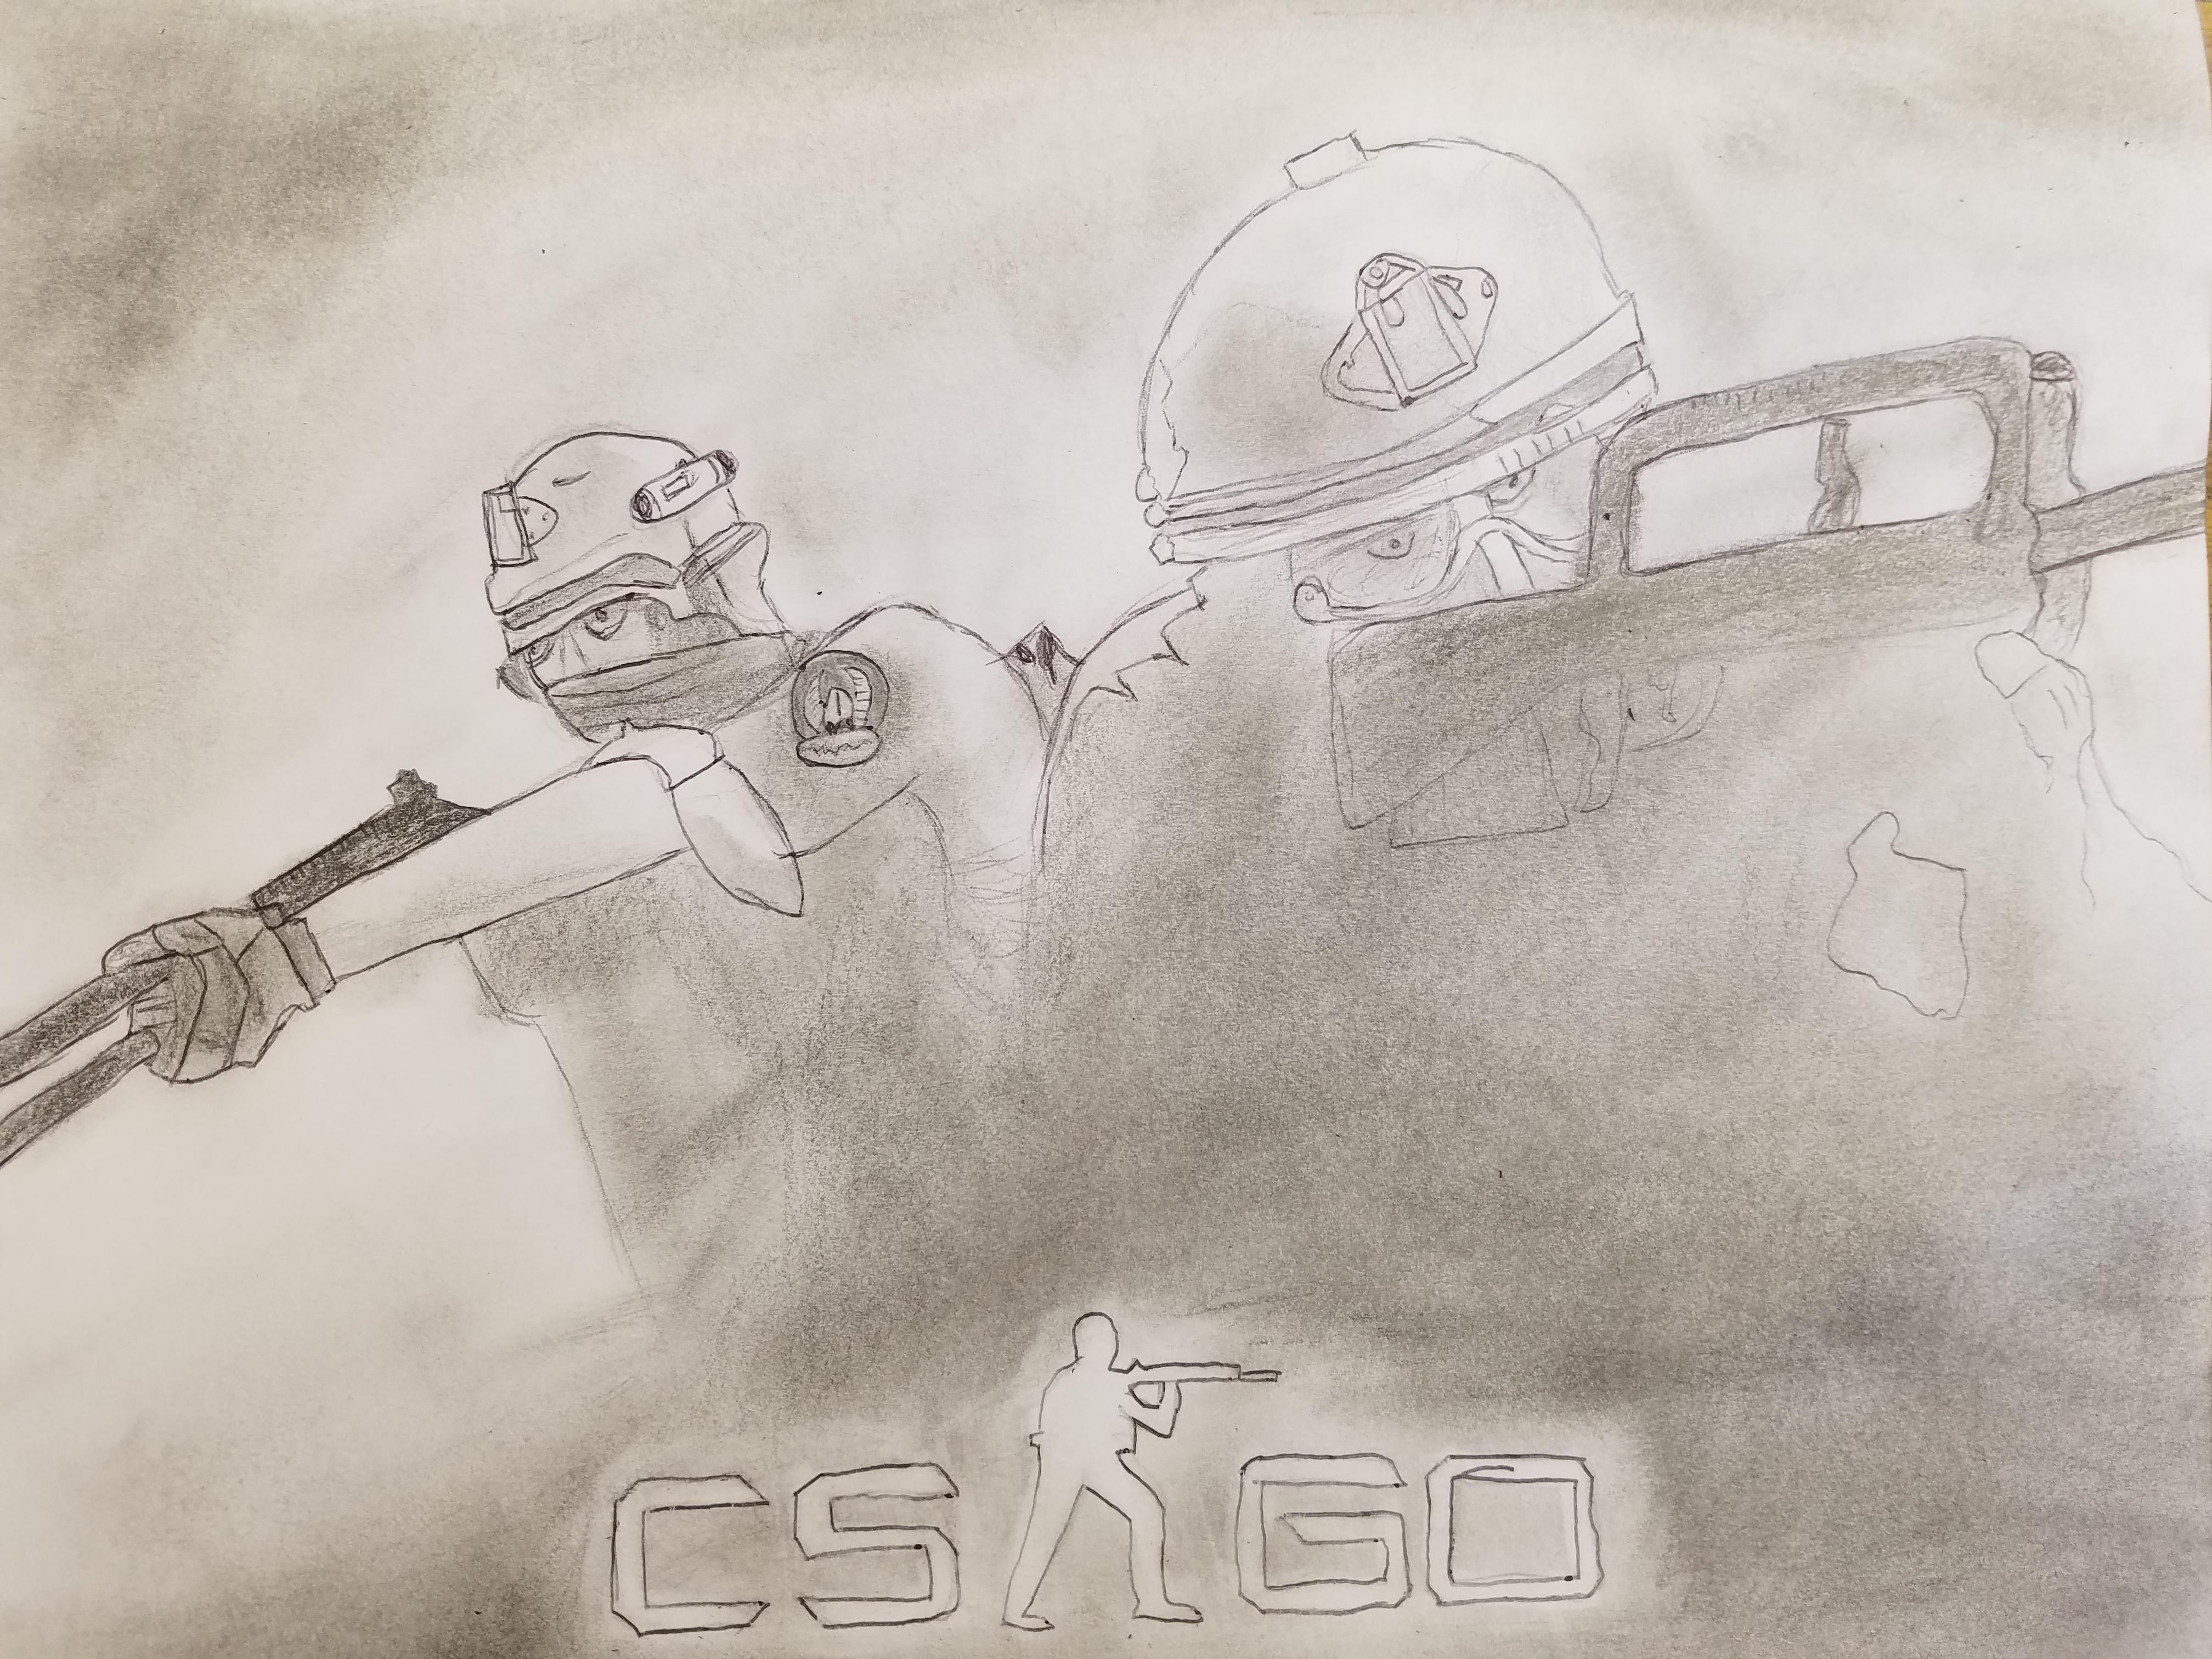 clipart transparent library Certainly not the best. Csgo drawing.